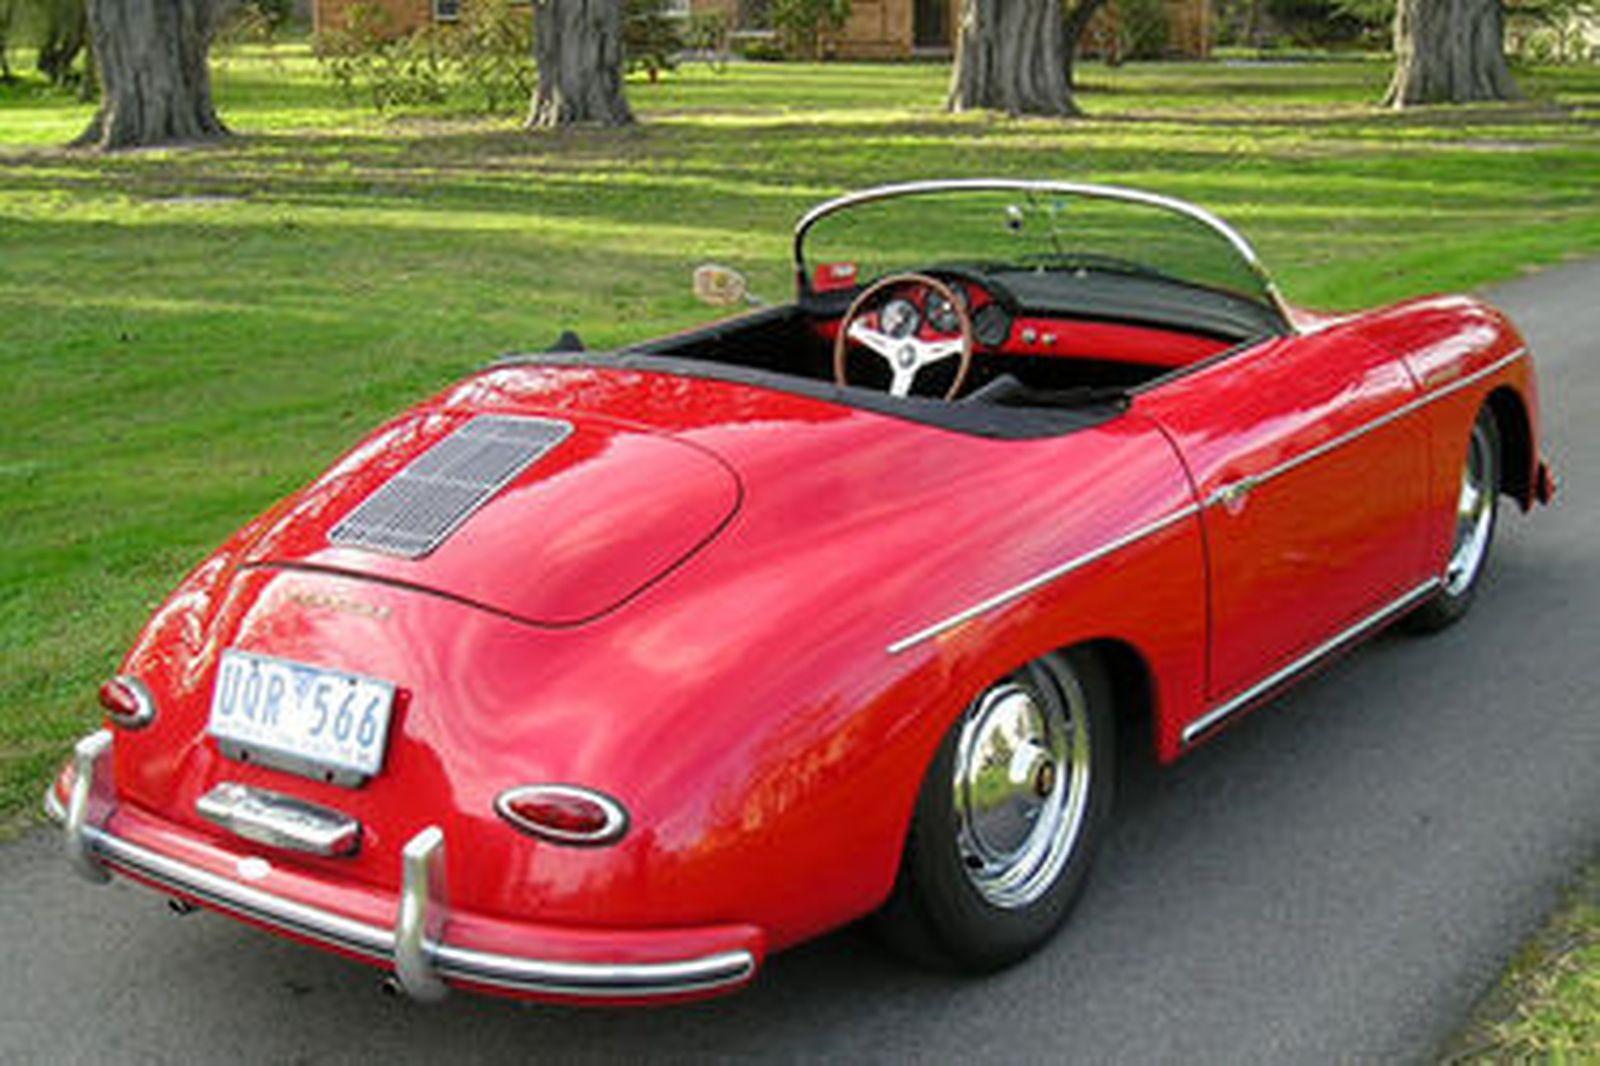 356 Speedster Replica Lhd Auctions Lot 37 Shannons